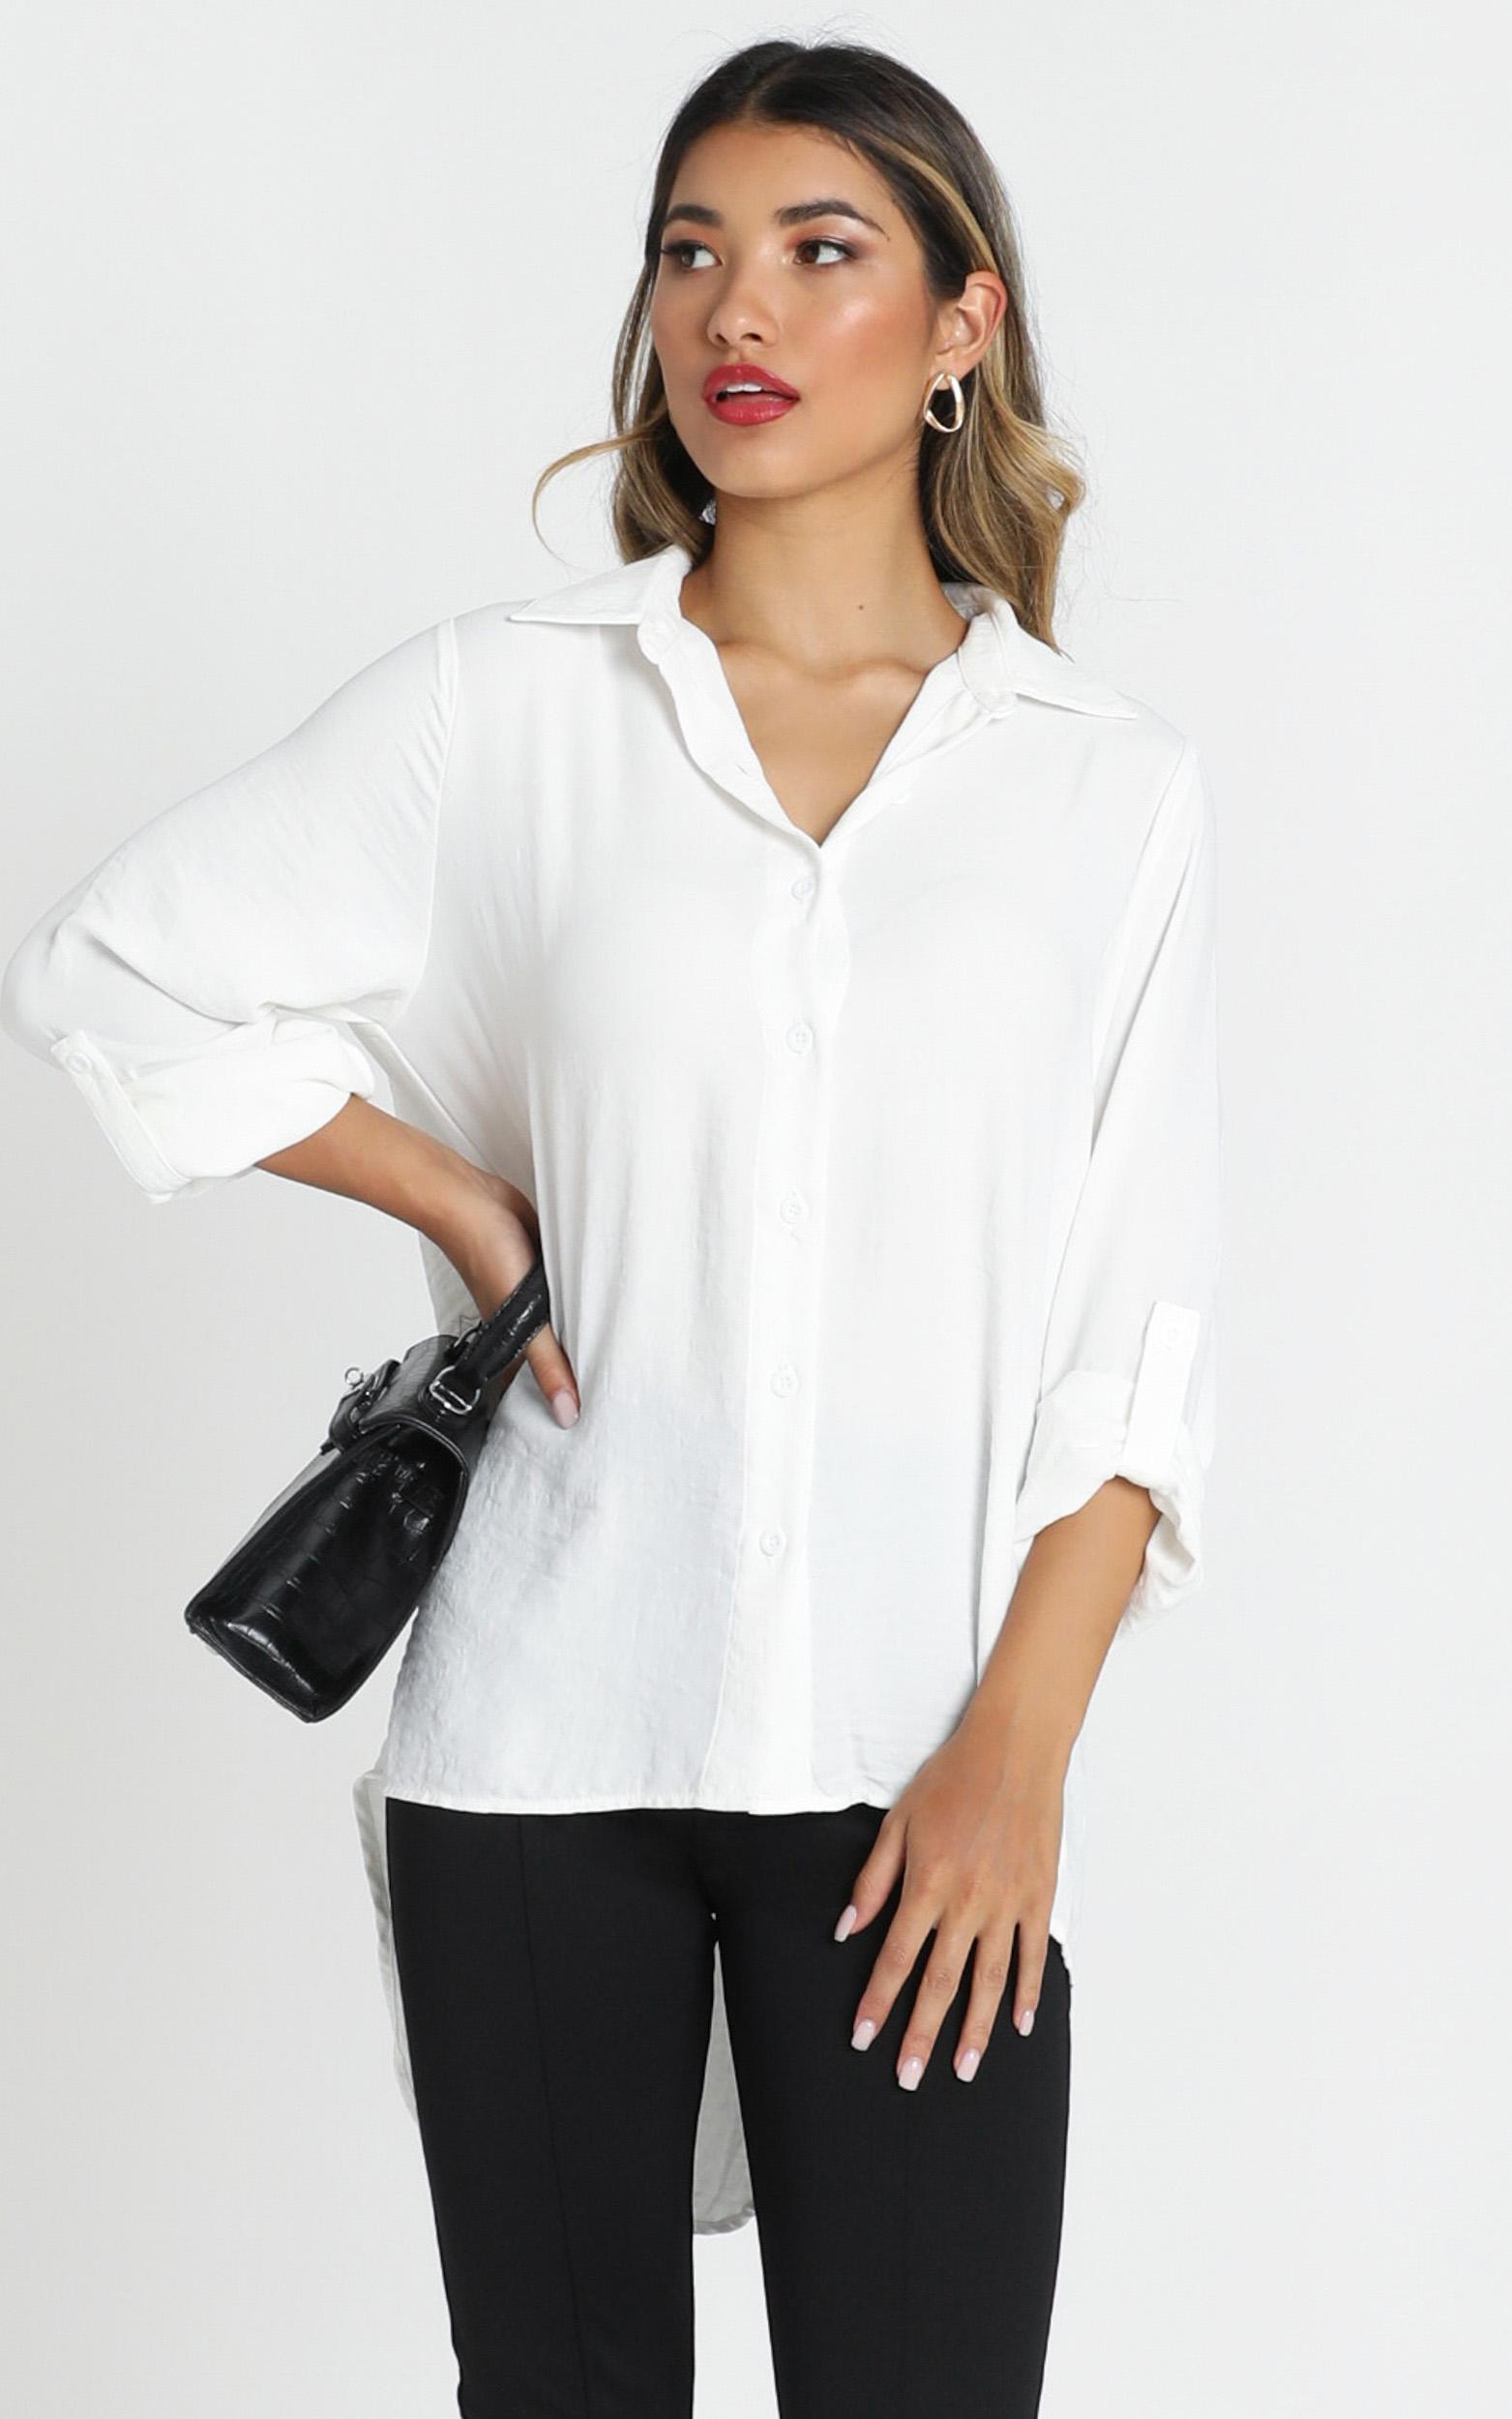 Sabbatical Shirt in white - 20 (XXXXL), White, hi-res image number null